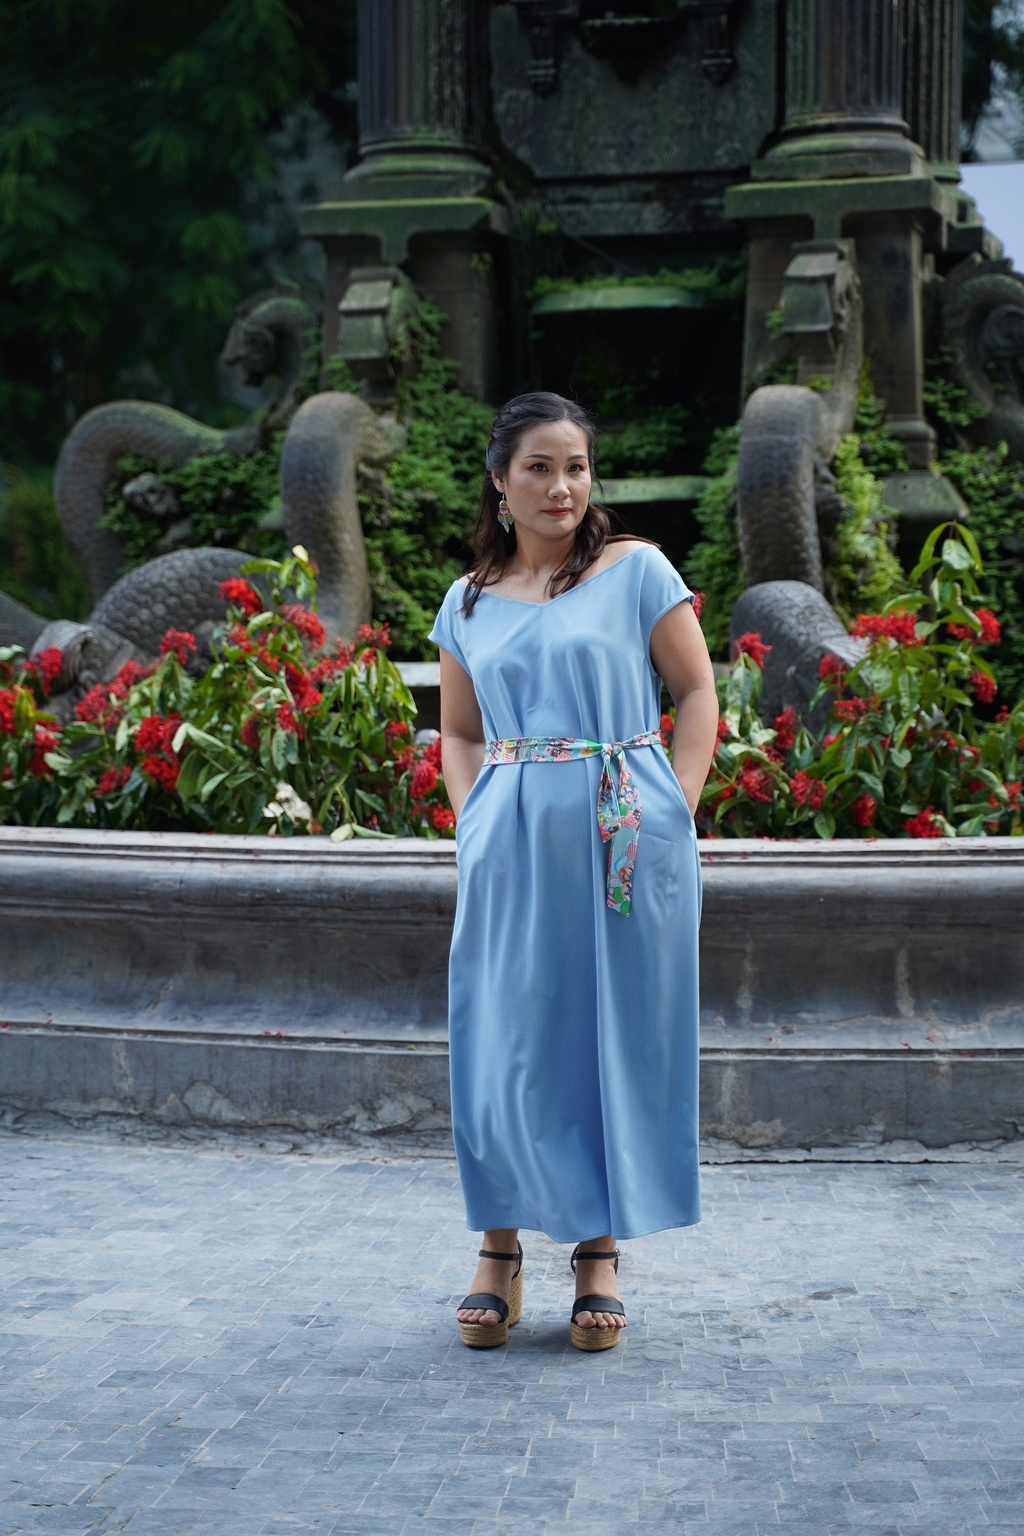 Hoi tho cuoc song trong BST 'Noi toi song' cua GenViet Jeans hinh anh 14